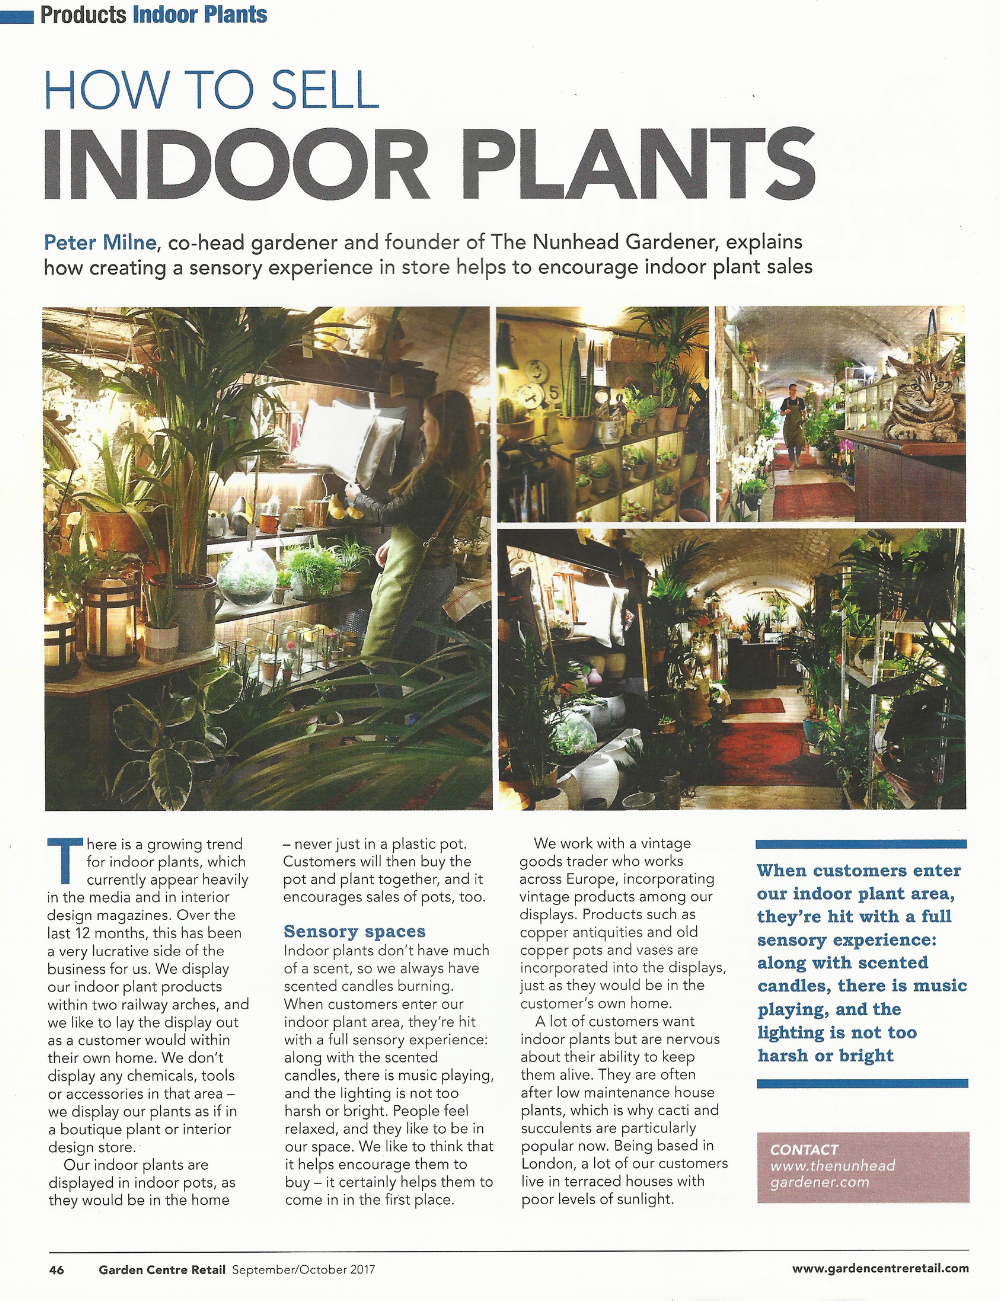 How to Sell Indoor Plants - Garden Centre Retail